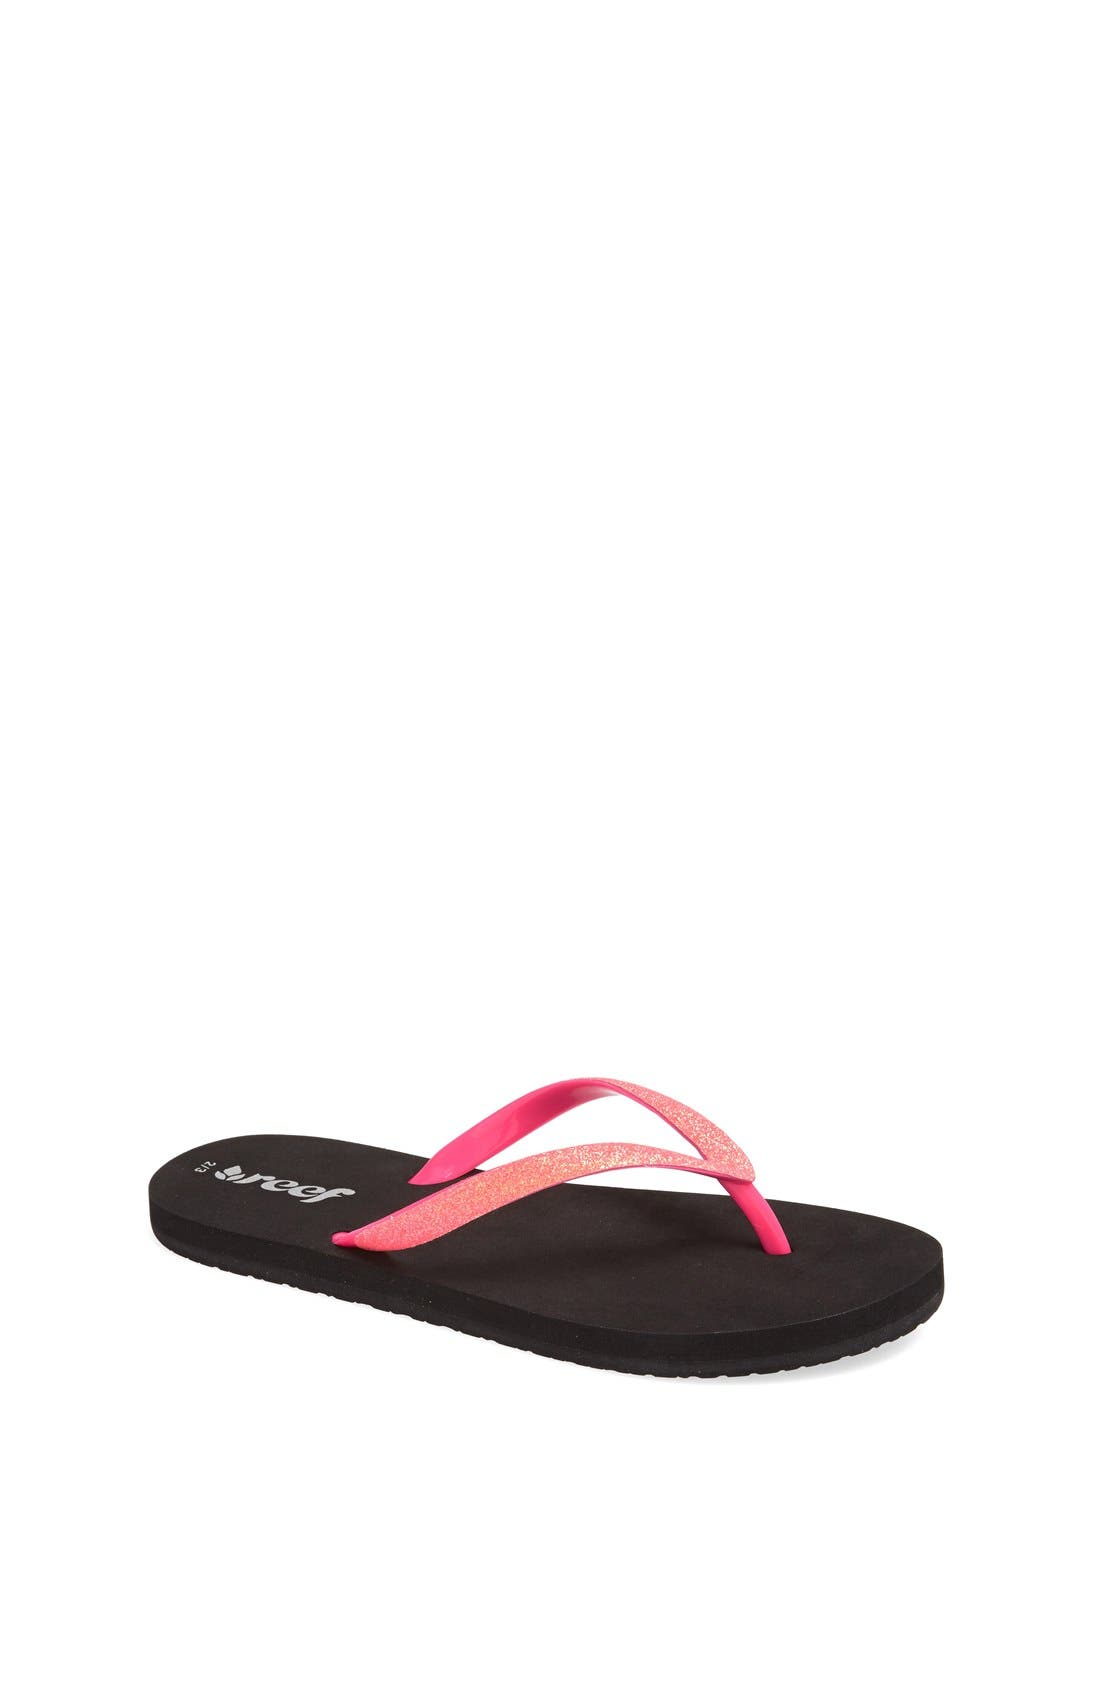 Alternate Image 1 Selected - Reef 'Little Stargazer' Flip Flop (Toddler, Little Kid & Big Kid)